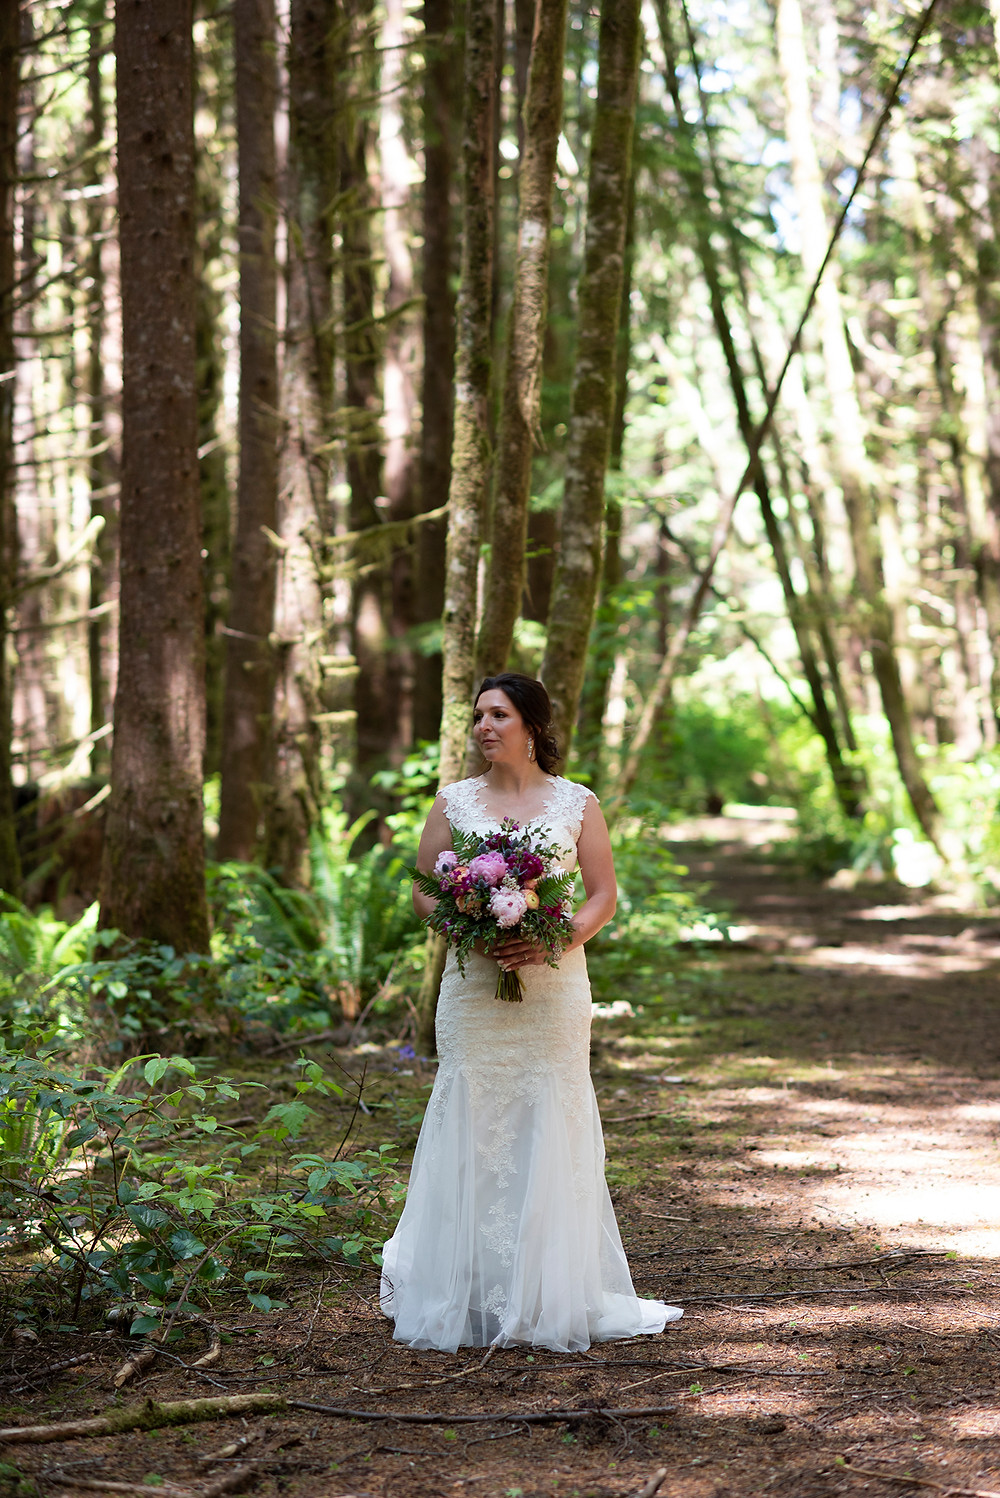 Forest wedding in Tofino. Photographed by Tofino photographer Kaitlyn Shea.